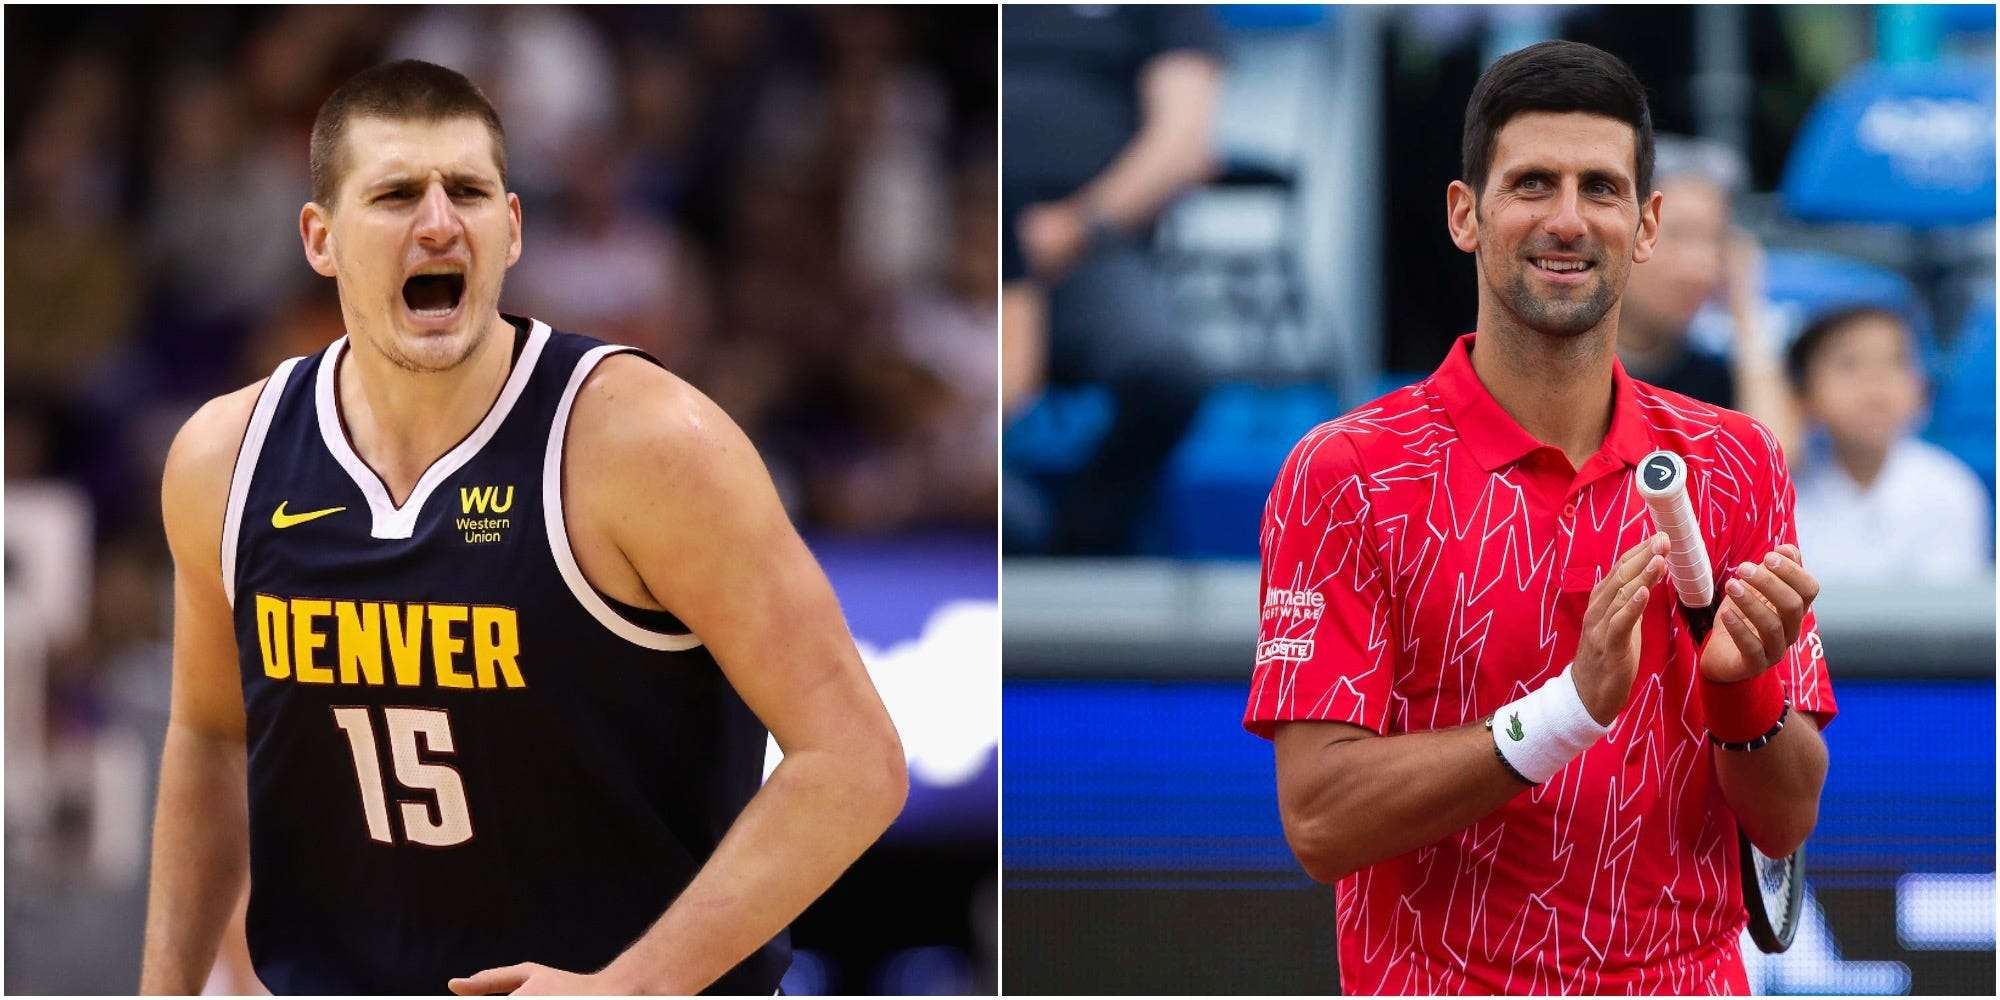 Nba S Jokic Positive For Coronavirus After Novak Djokovic Encounter Insider